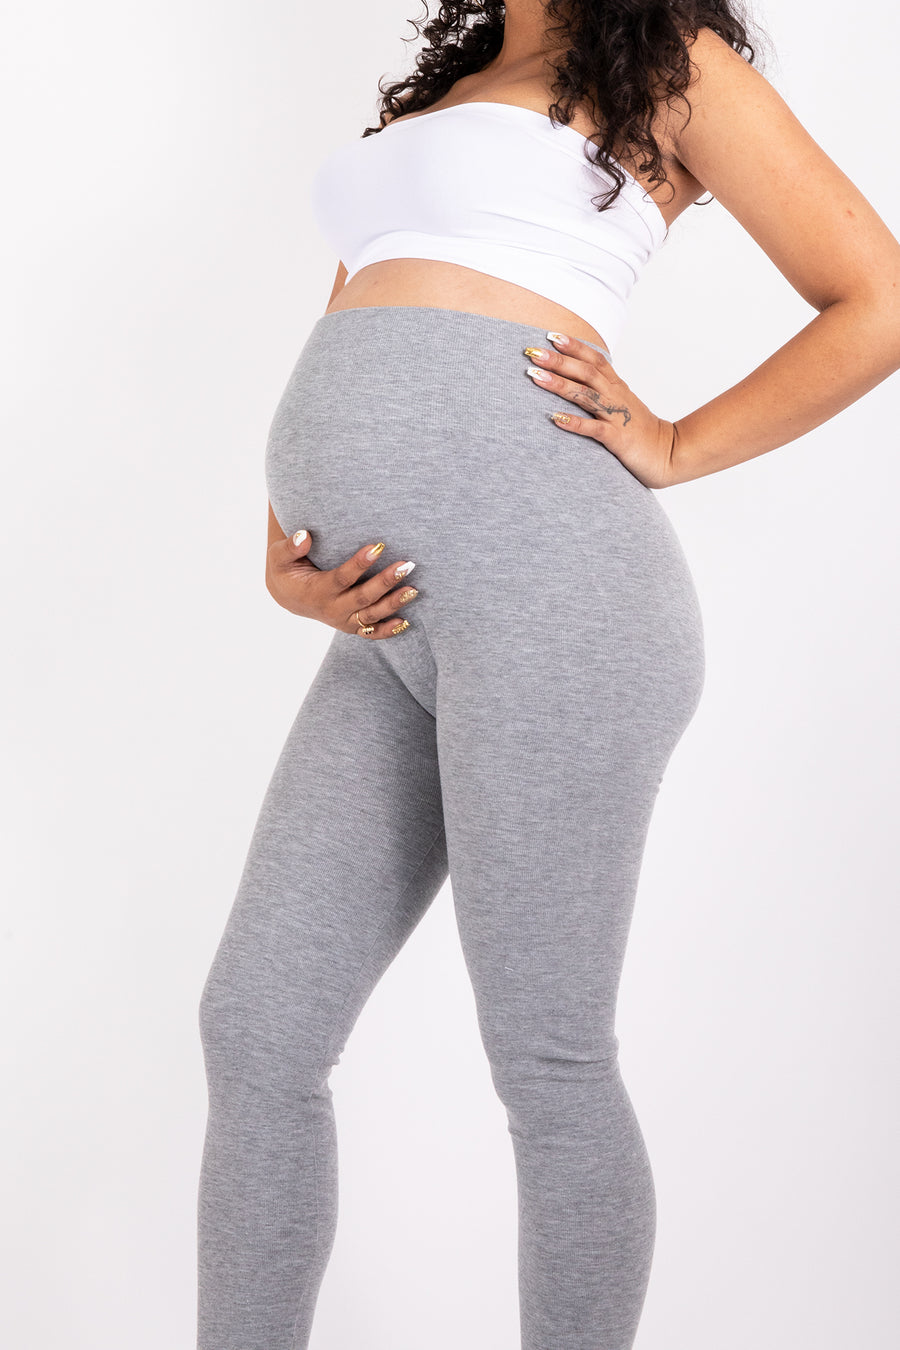 The Maternity Gray Cotton Tummy Control Legging (fits up to Plus)